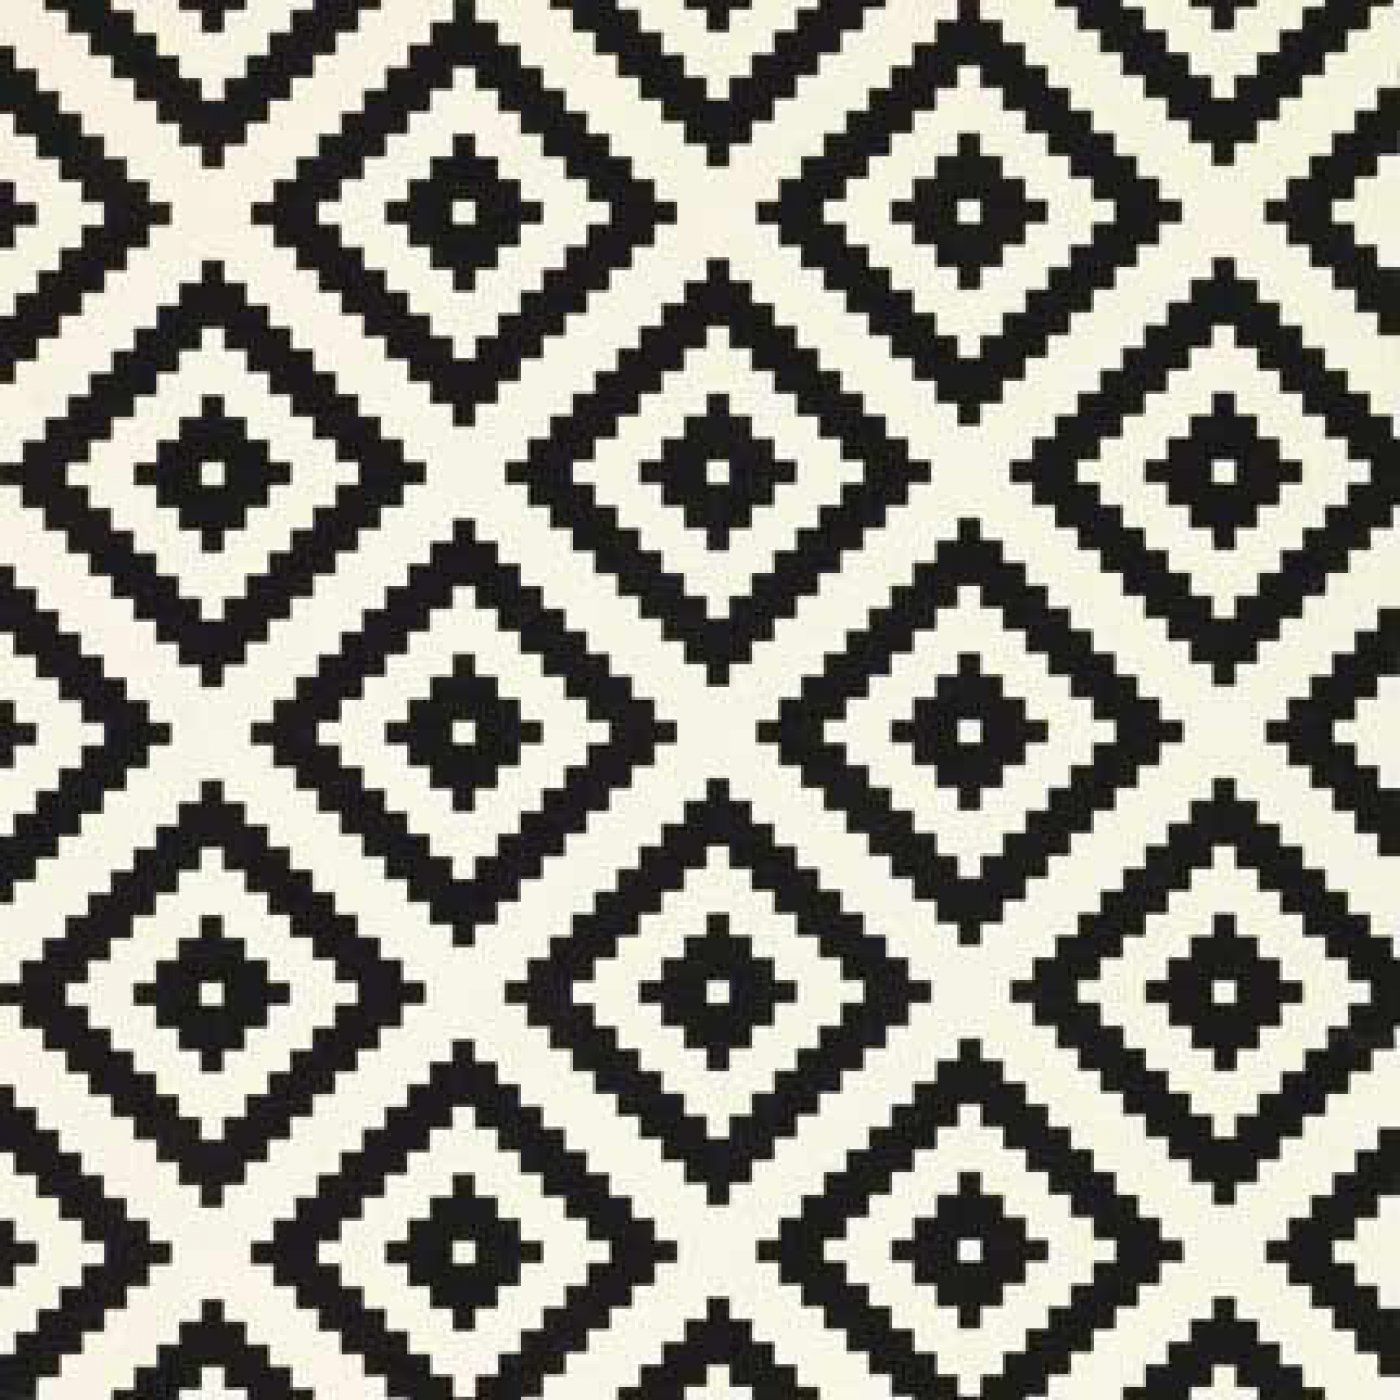 Tapis Lappljung Ruta Ikea Black And White Carpet Ikea Rug Cheap Rugs